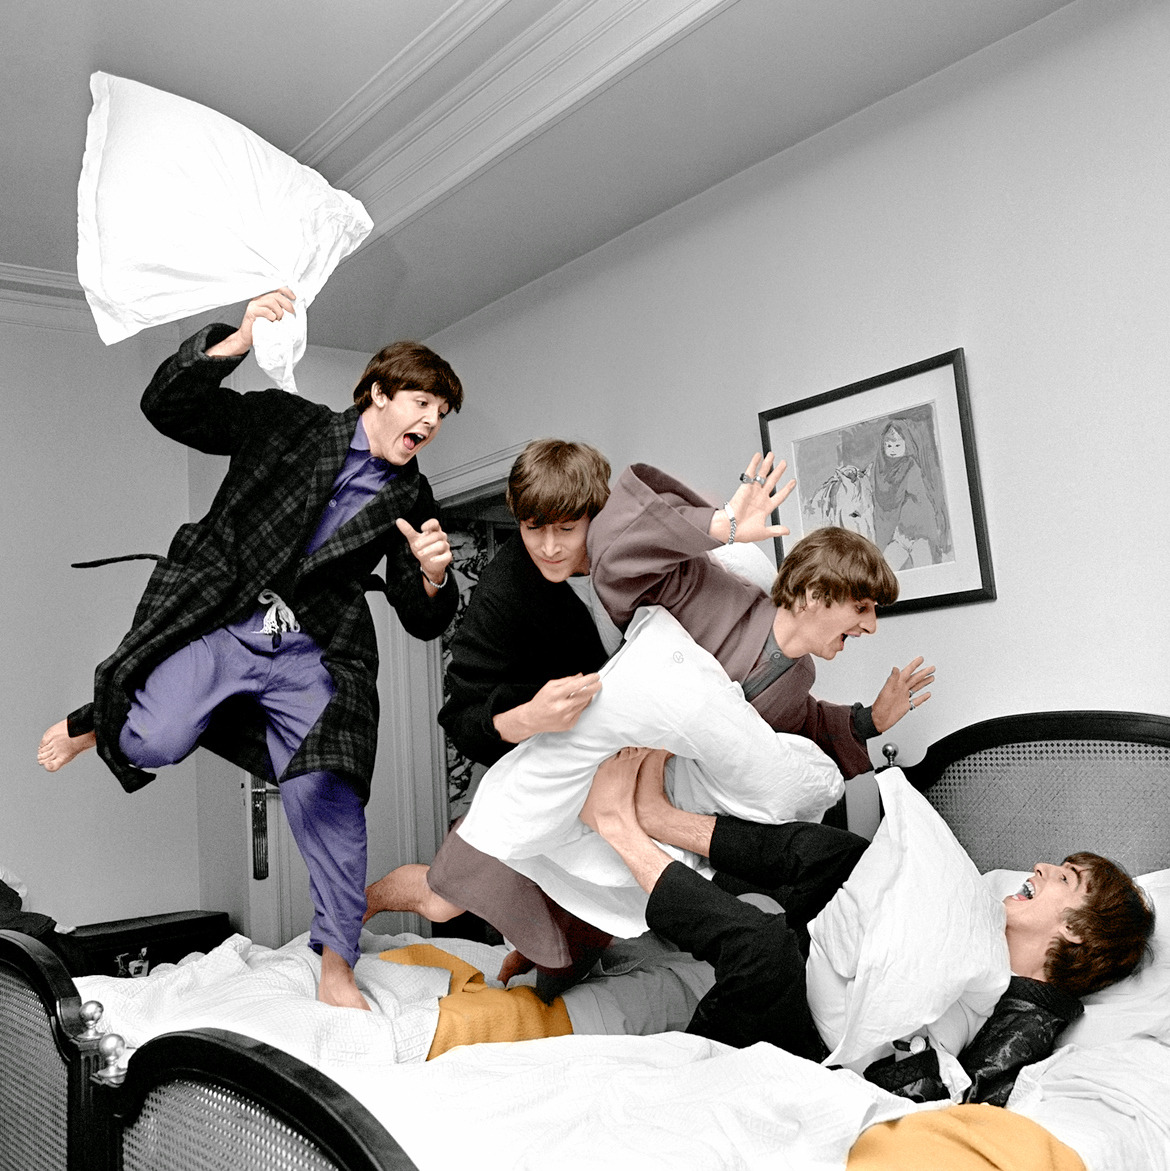 #TheBeatles having fun with a pillow fight in their hotel room in Paris, January 1964